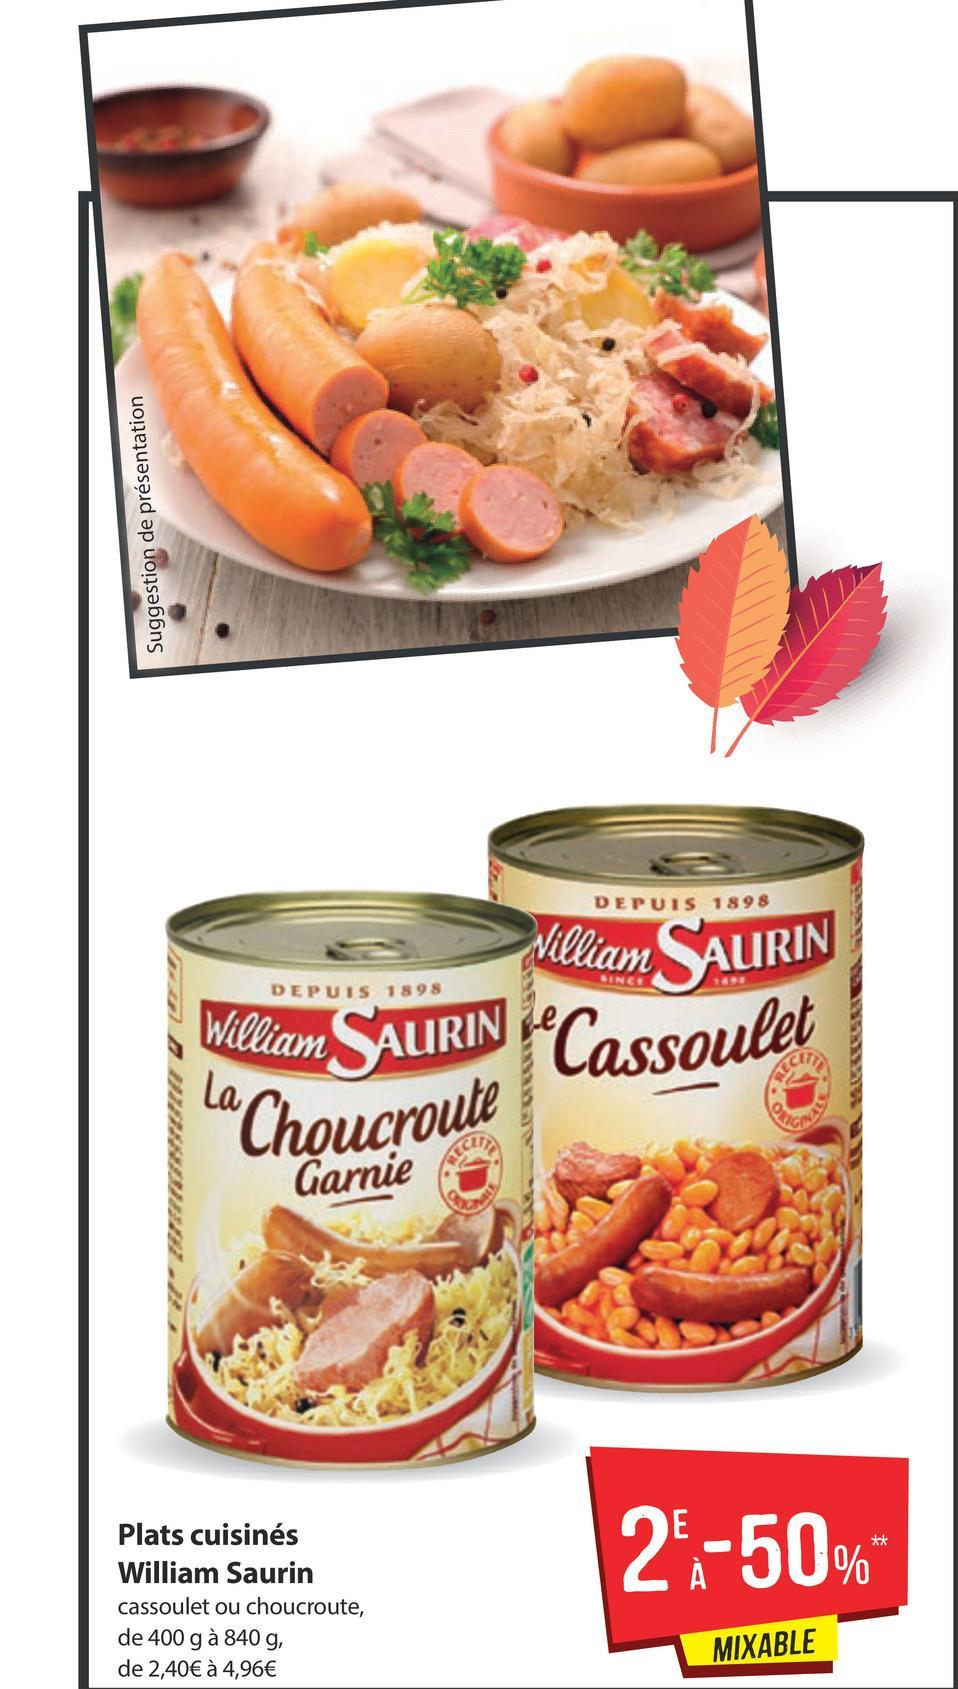 "Suggestion de présentation DEPUIS 1898 DEPUIS 1898 William SAURIN SAURIN (Cassoulet ""Choucroute William SAURIN Garnie 28-50% Plats cuisinés William Saurin cassoulet ou choucroute, de 400 g à 840 g, de 2,40€ à 4,96€ MIXABLE"